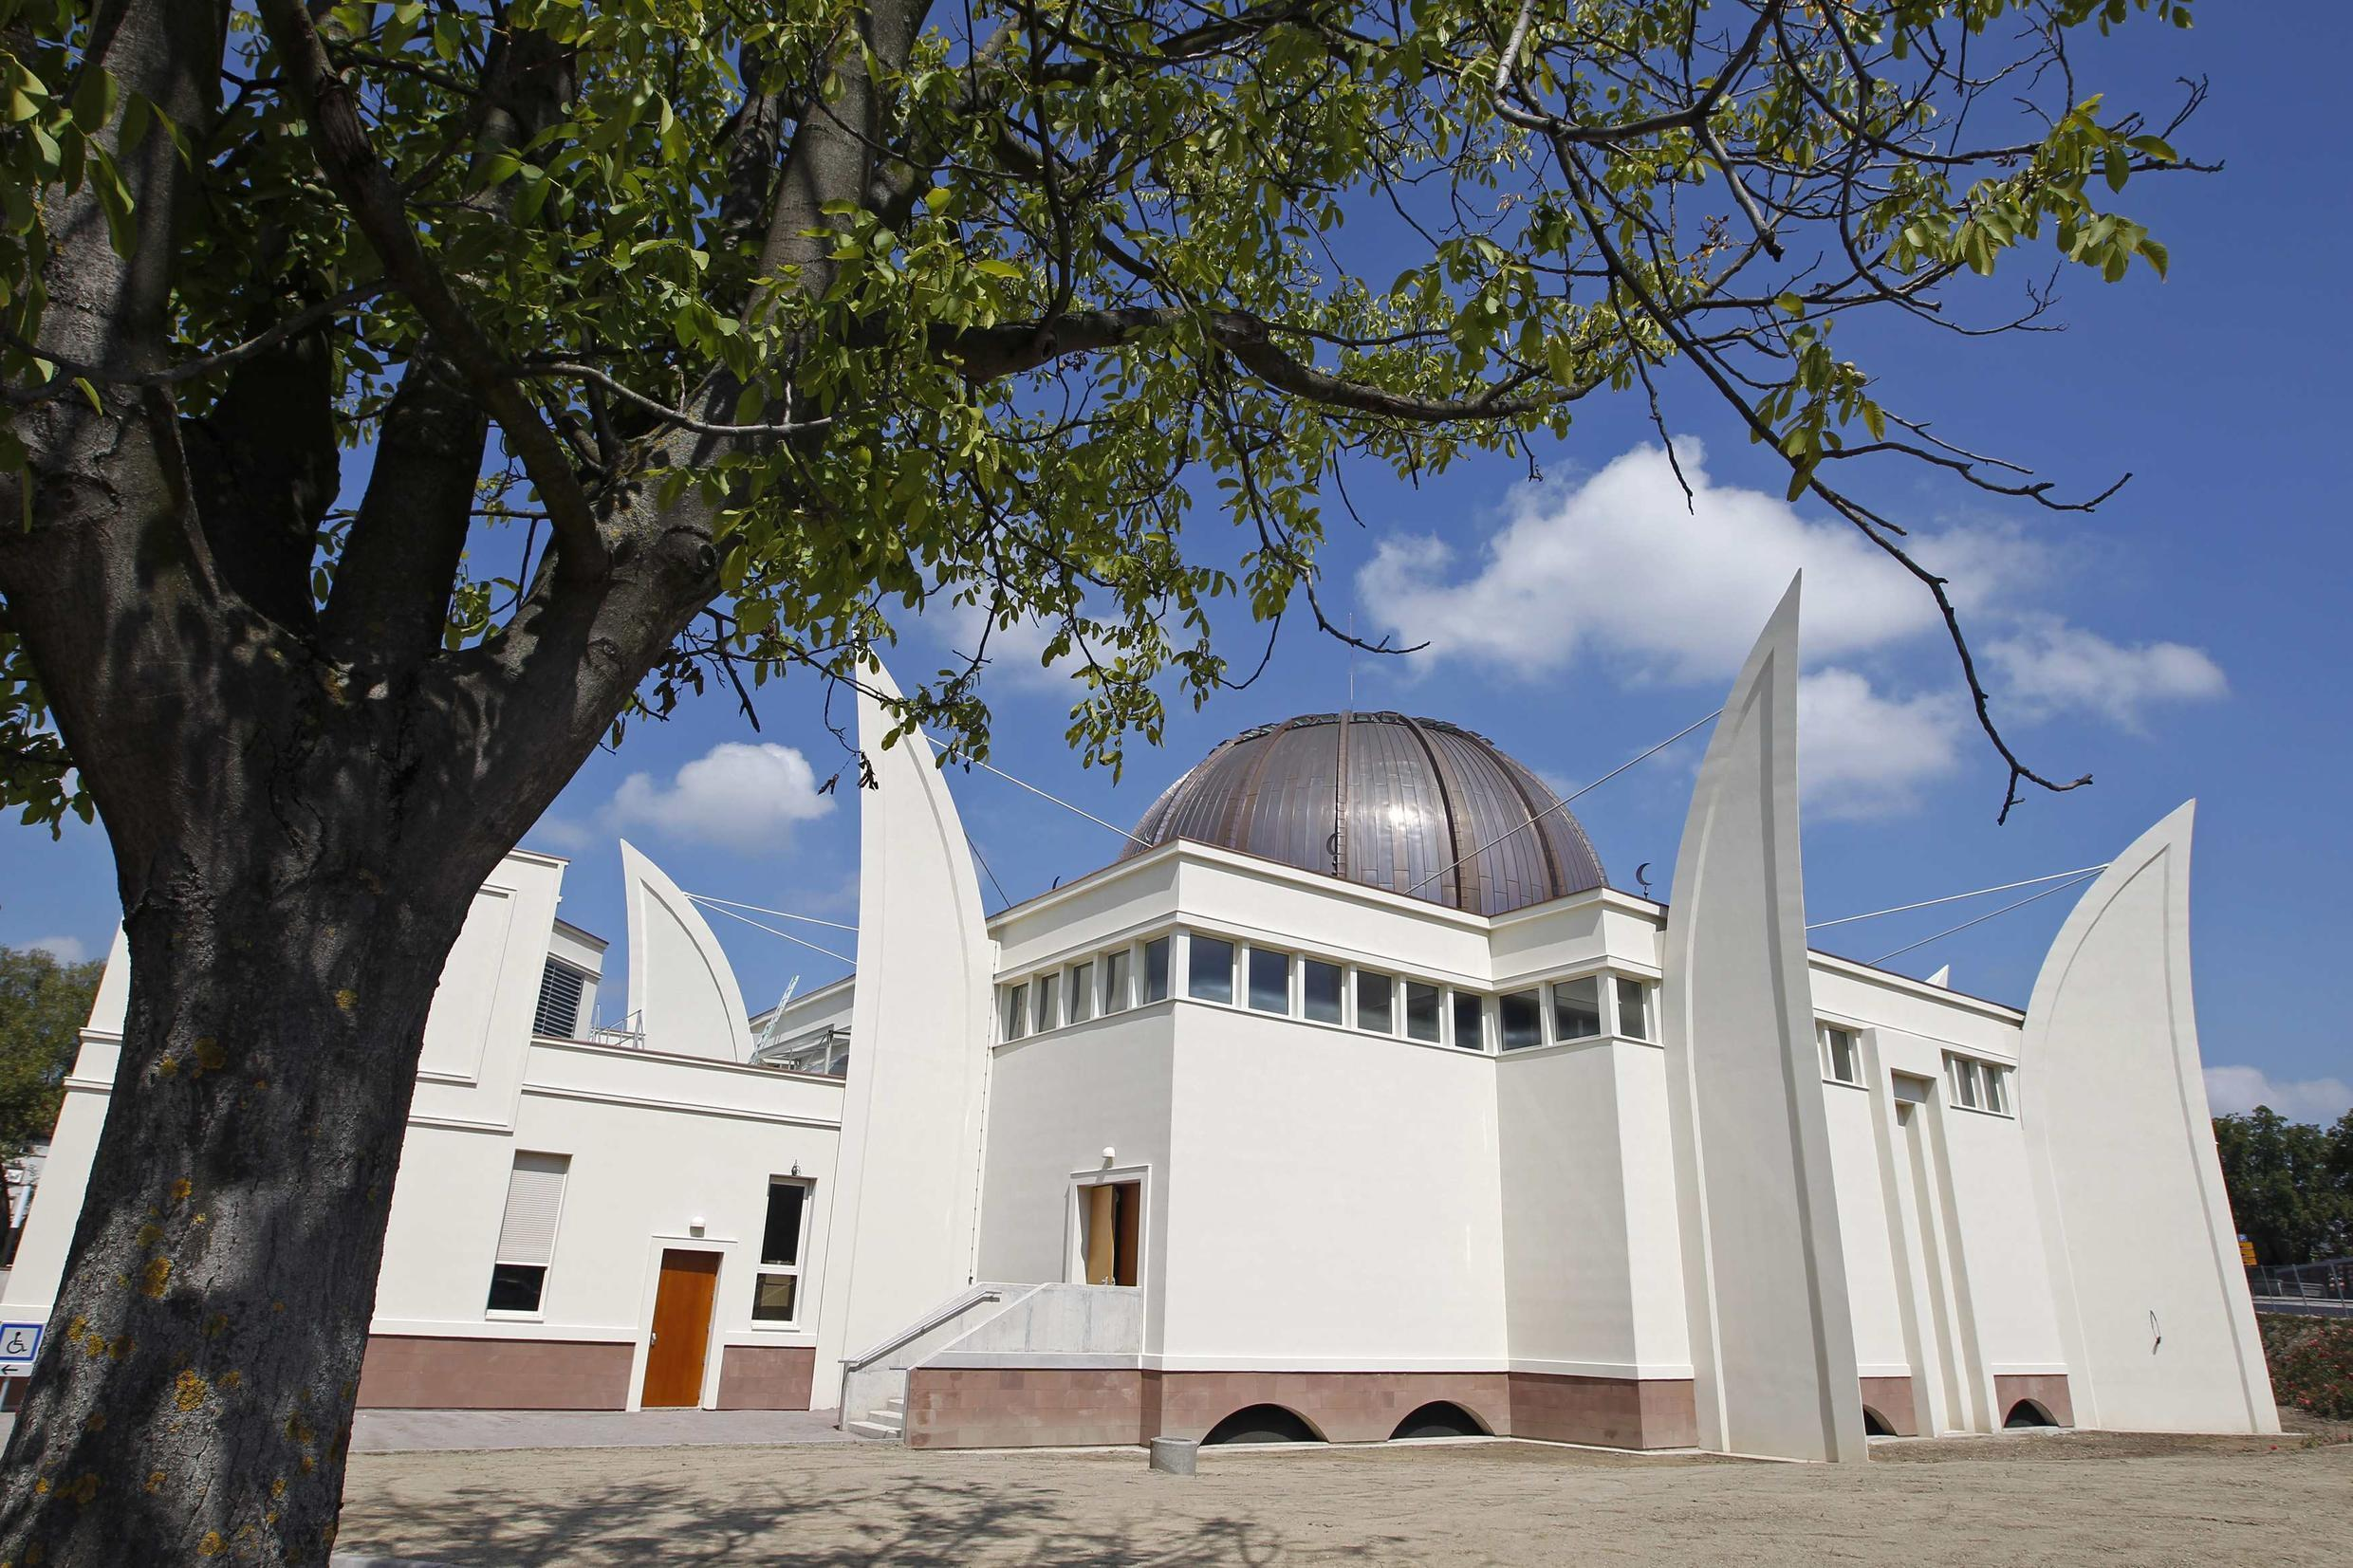 A mosque that opened last month in the French city of Strasbourg